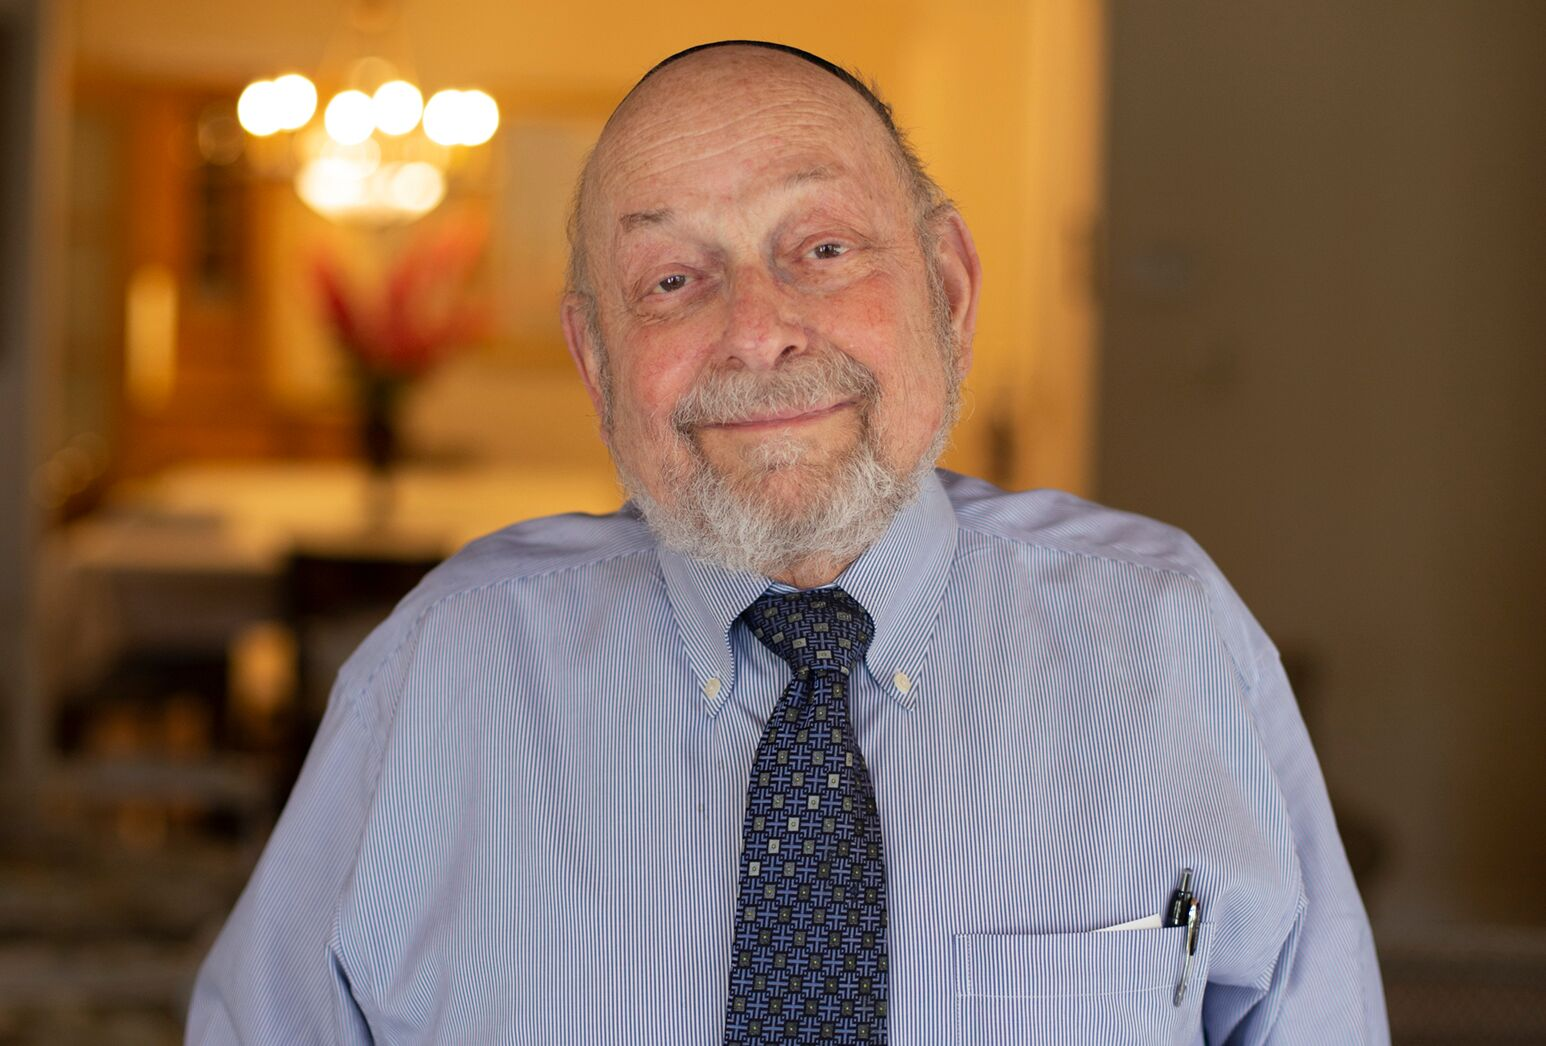 Older man wearing a blue collared shirt and tie smiles in his home.